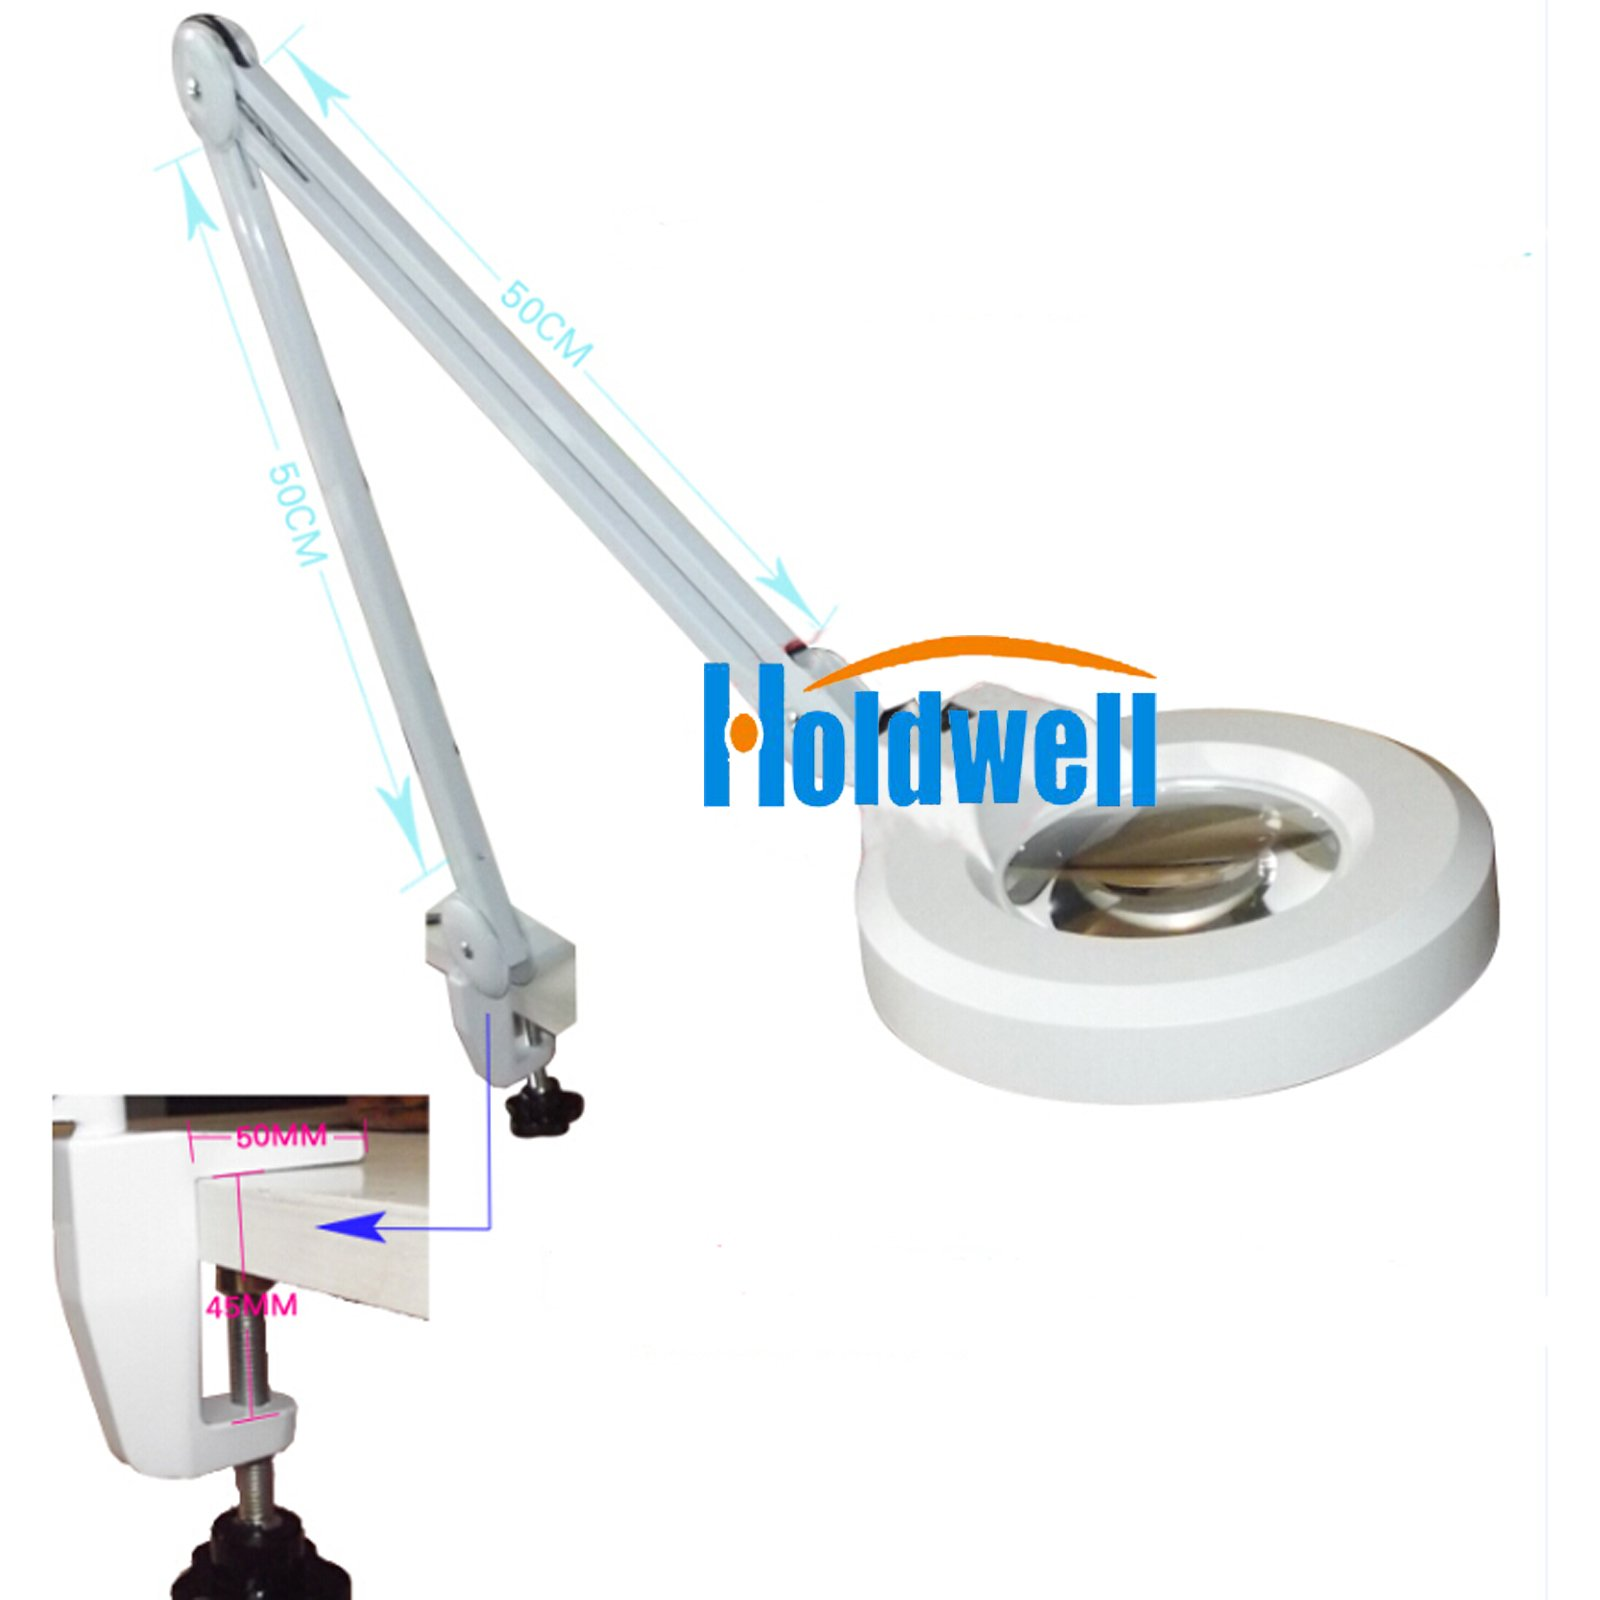 Holdwell White LED Desk Table Clamp Mount Adjustable Arm Magnifier Lamp Light Magnifying Glass Lens Diopter (20X magnification)